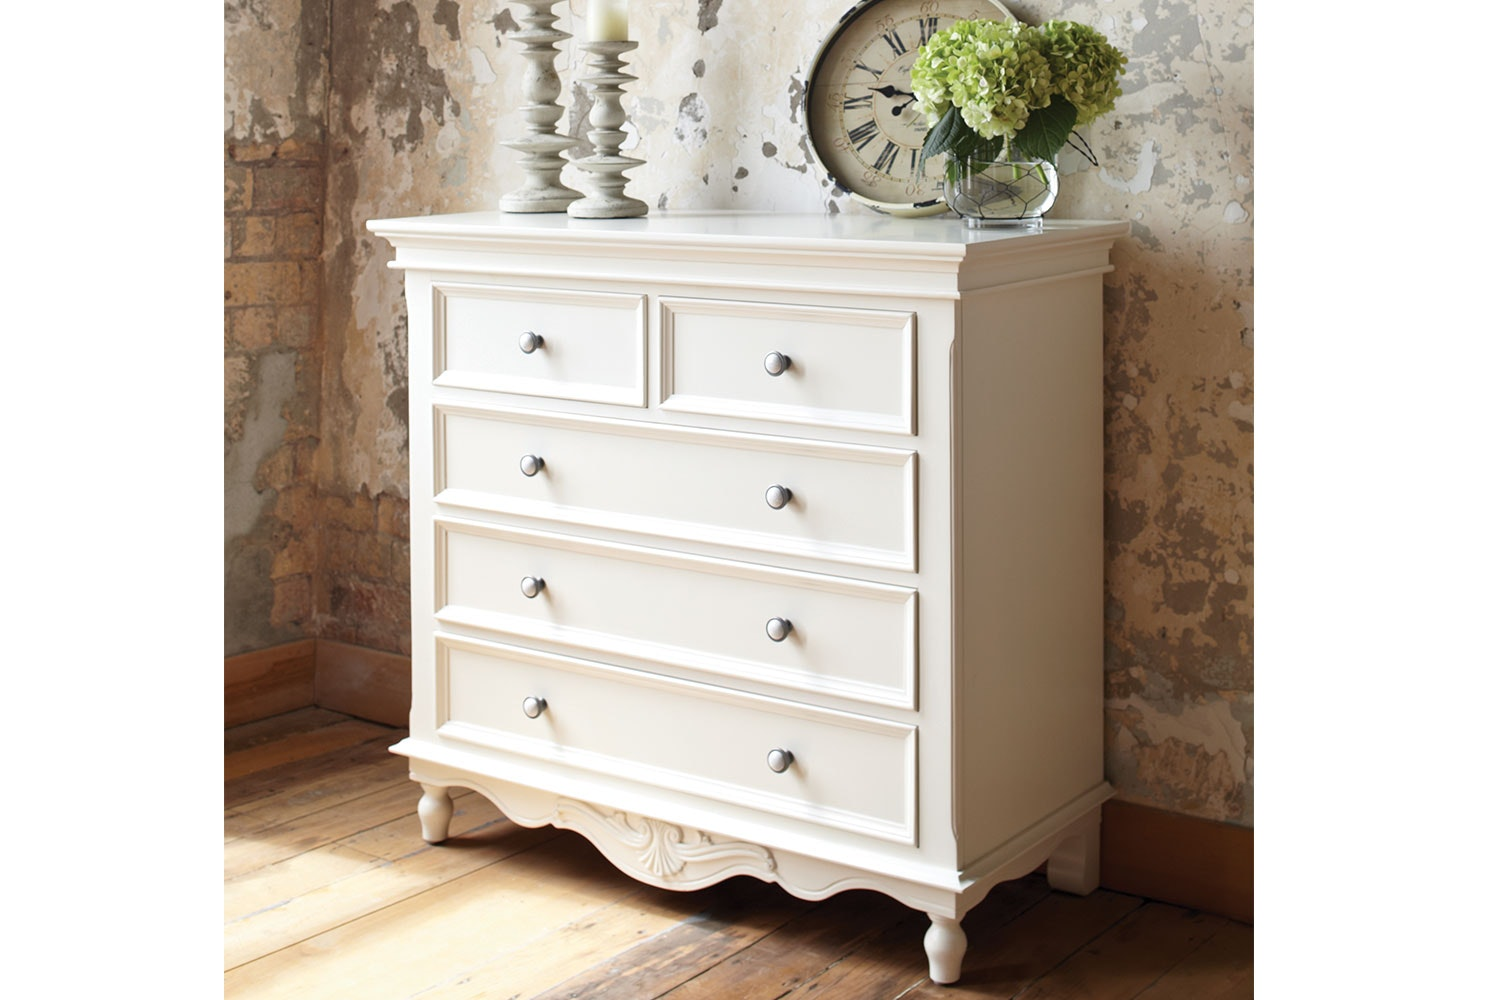 Chambre 5 drawer chest by Garry Masters